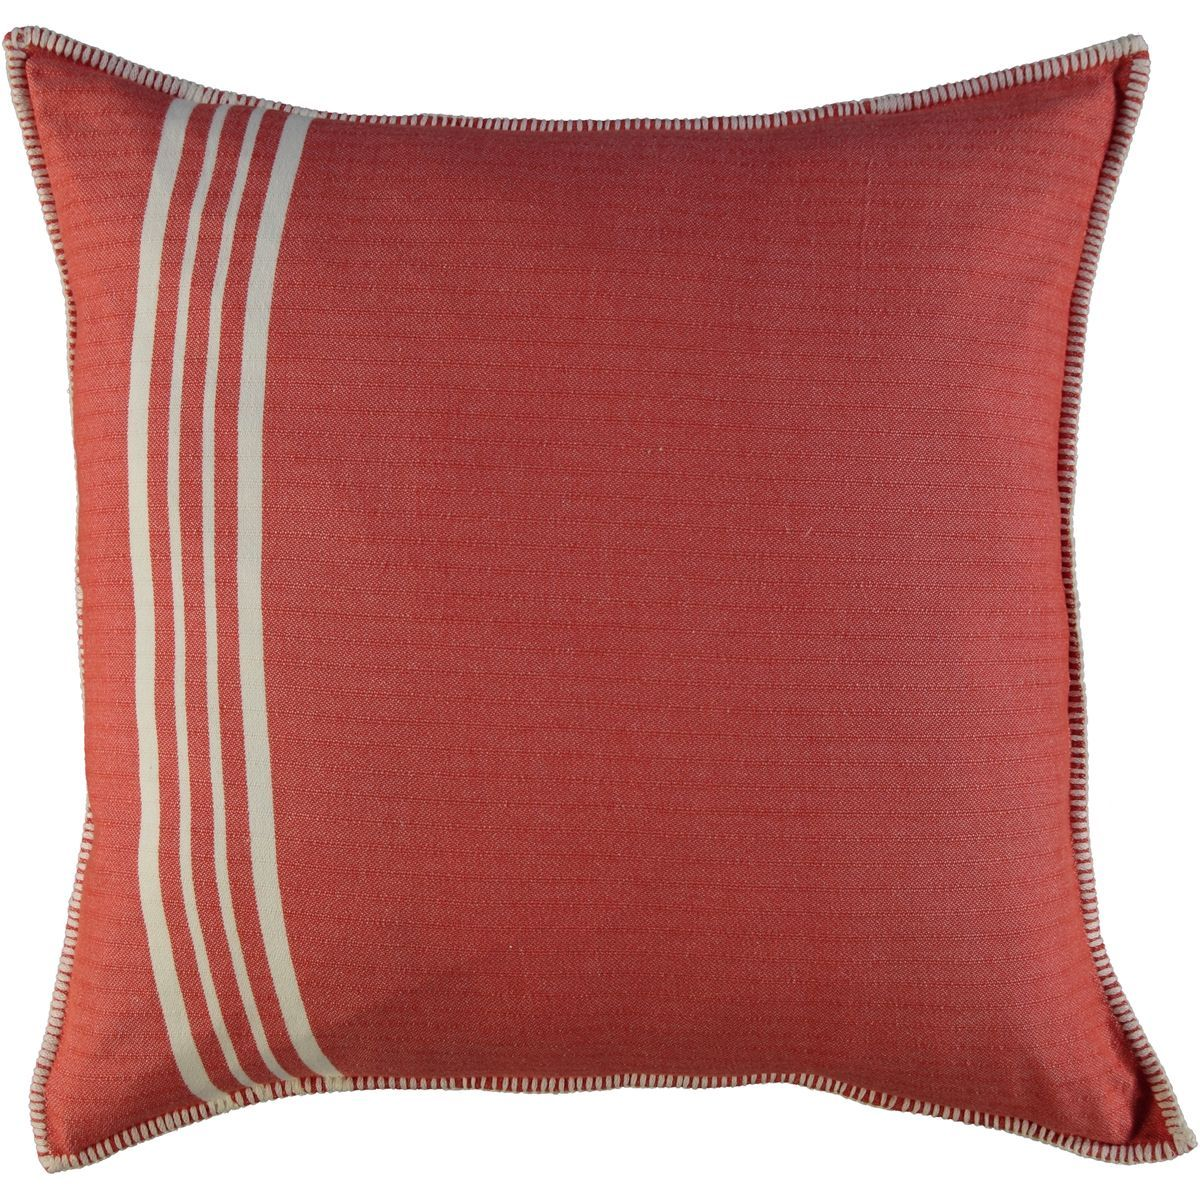 Cushion Cover Sultan - Red / 65x65